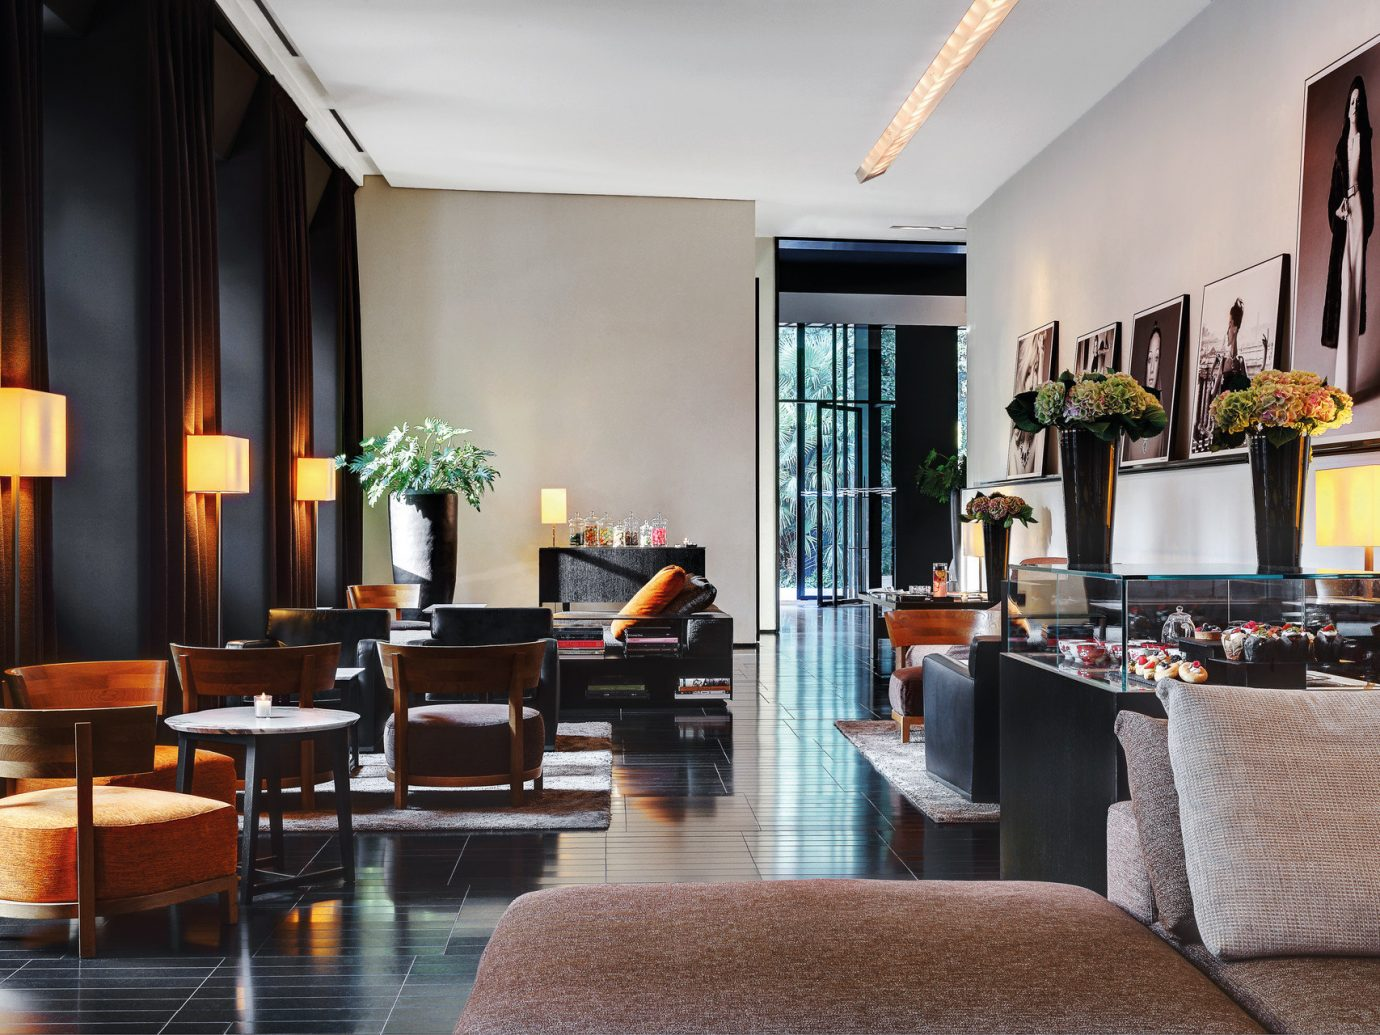 ambient lighting chic clean Hotels interior Italy Lounge lounge chairs Luxury Milan relaxation seating Spa indoor room wall Living property ceiling living room dining room home estate interior design furniture floor real estate Design Lobby condominium decorated area several